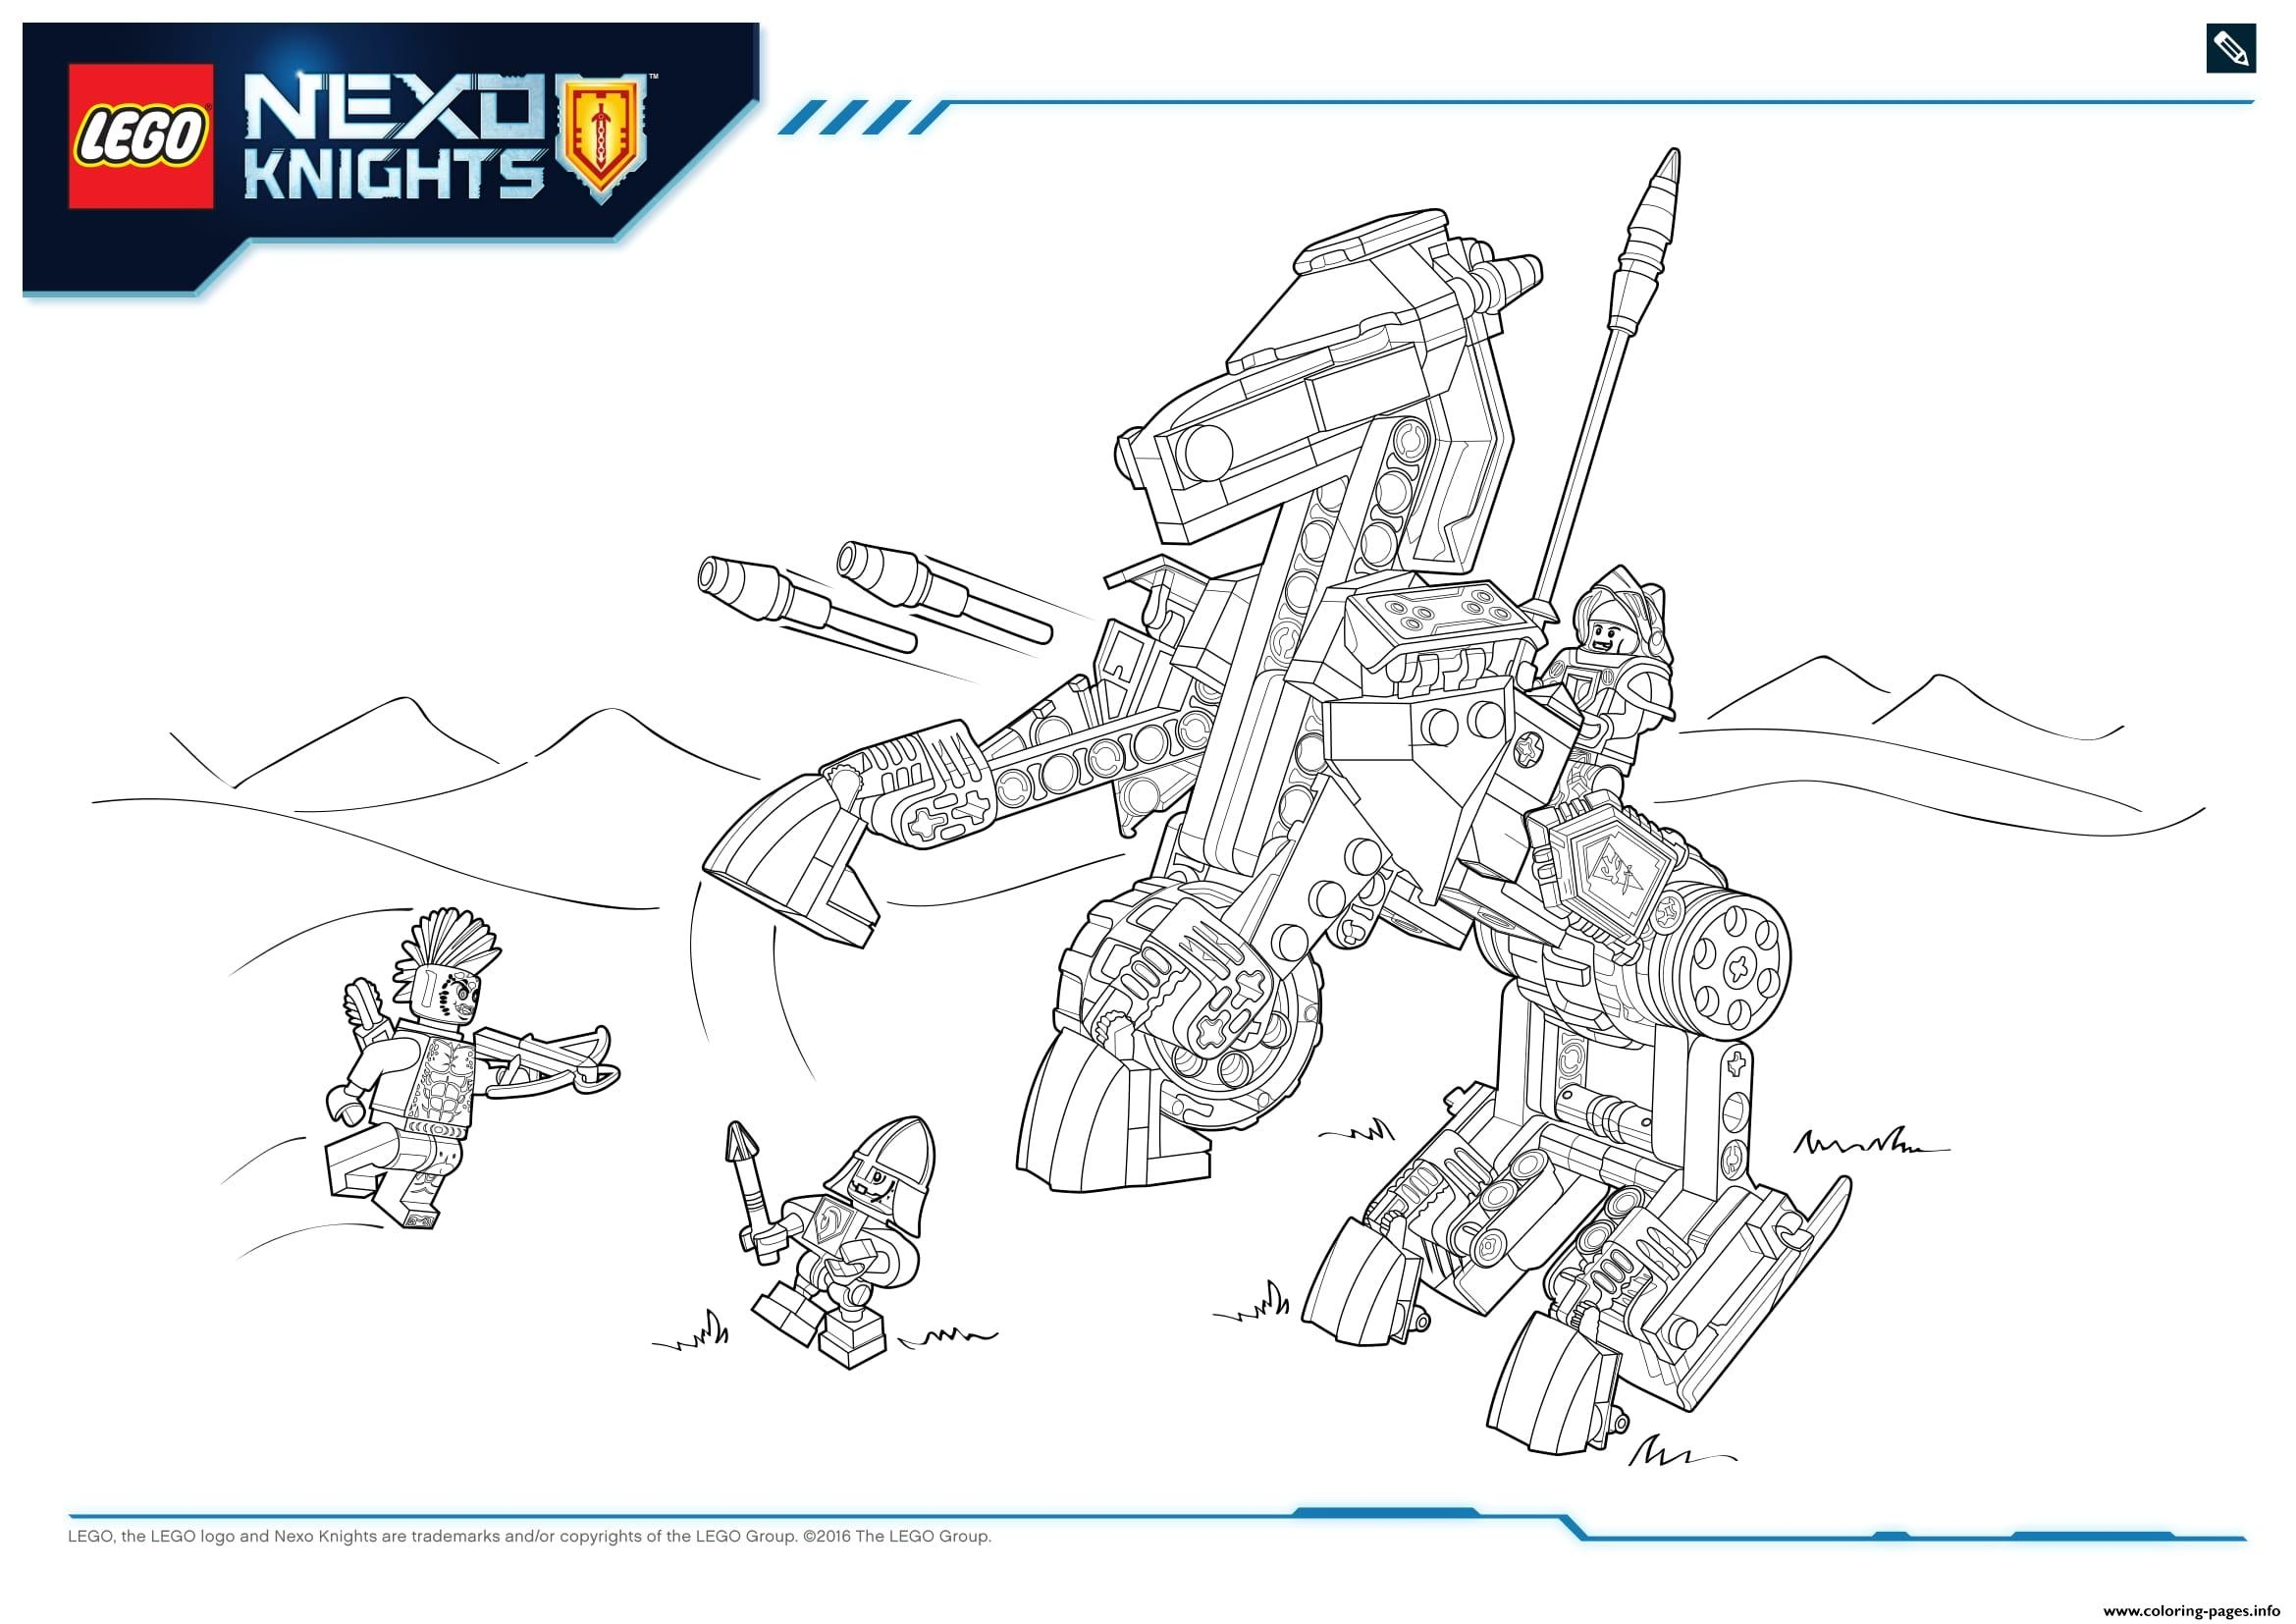 snowflake coloring page - lego nexo knights products 6 printable coloring pages book